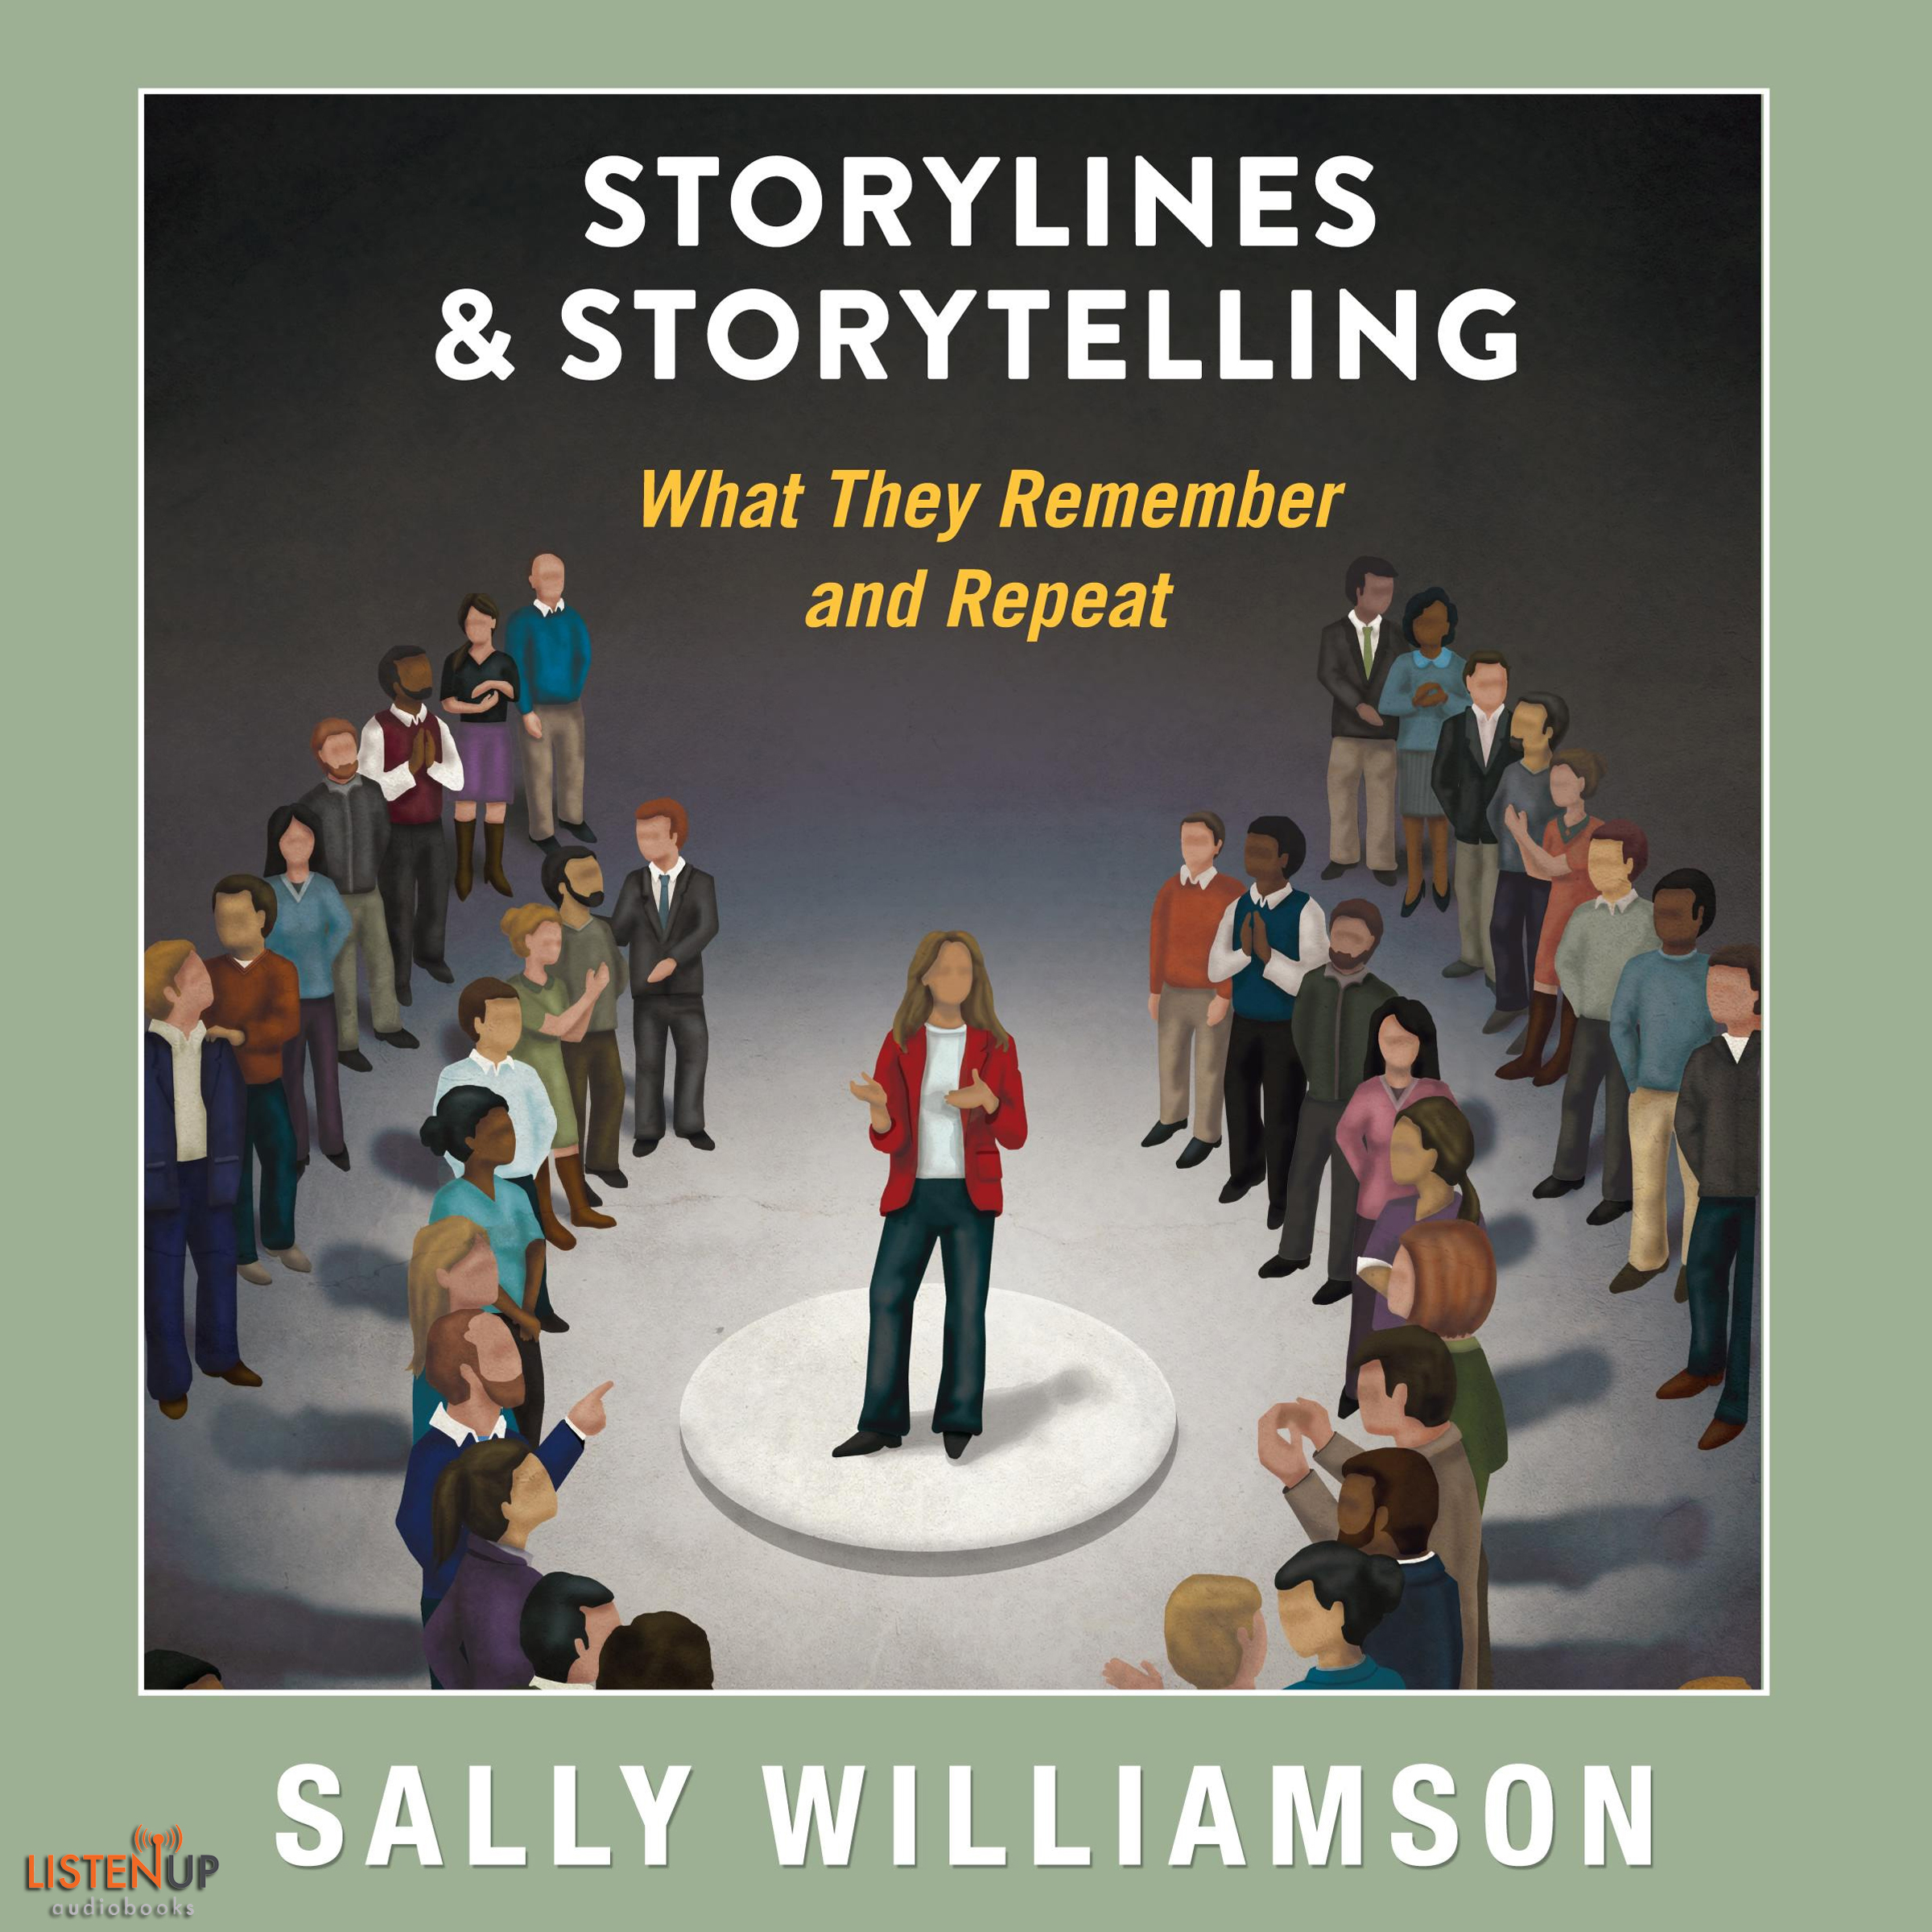 Storylines & Storytelling cover image